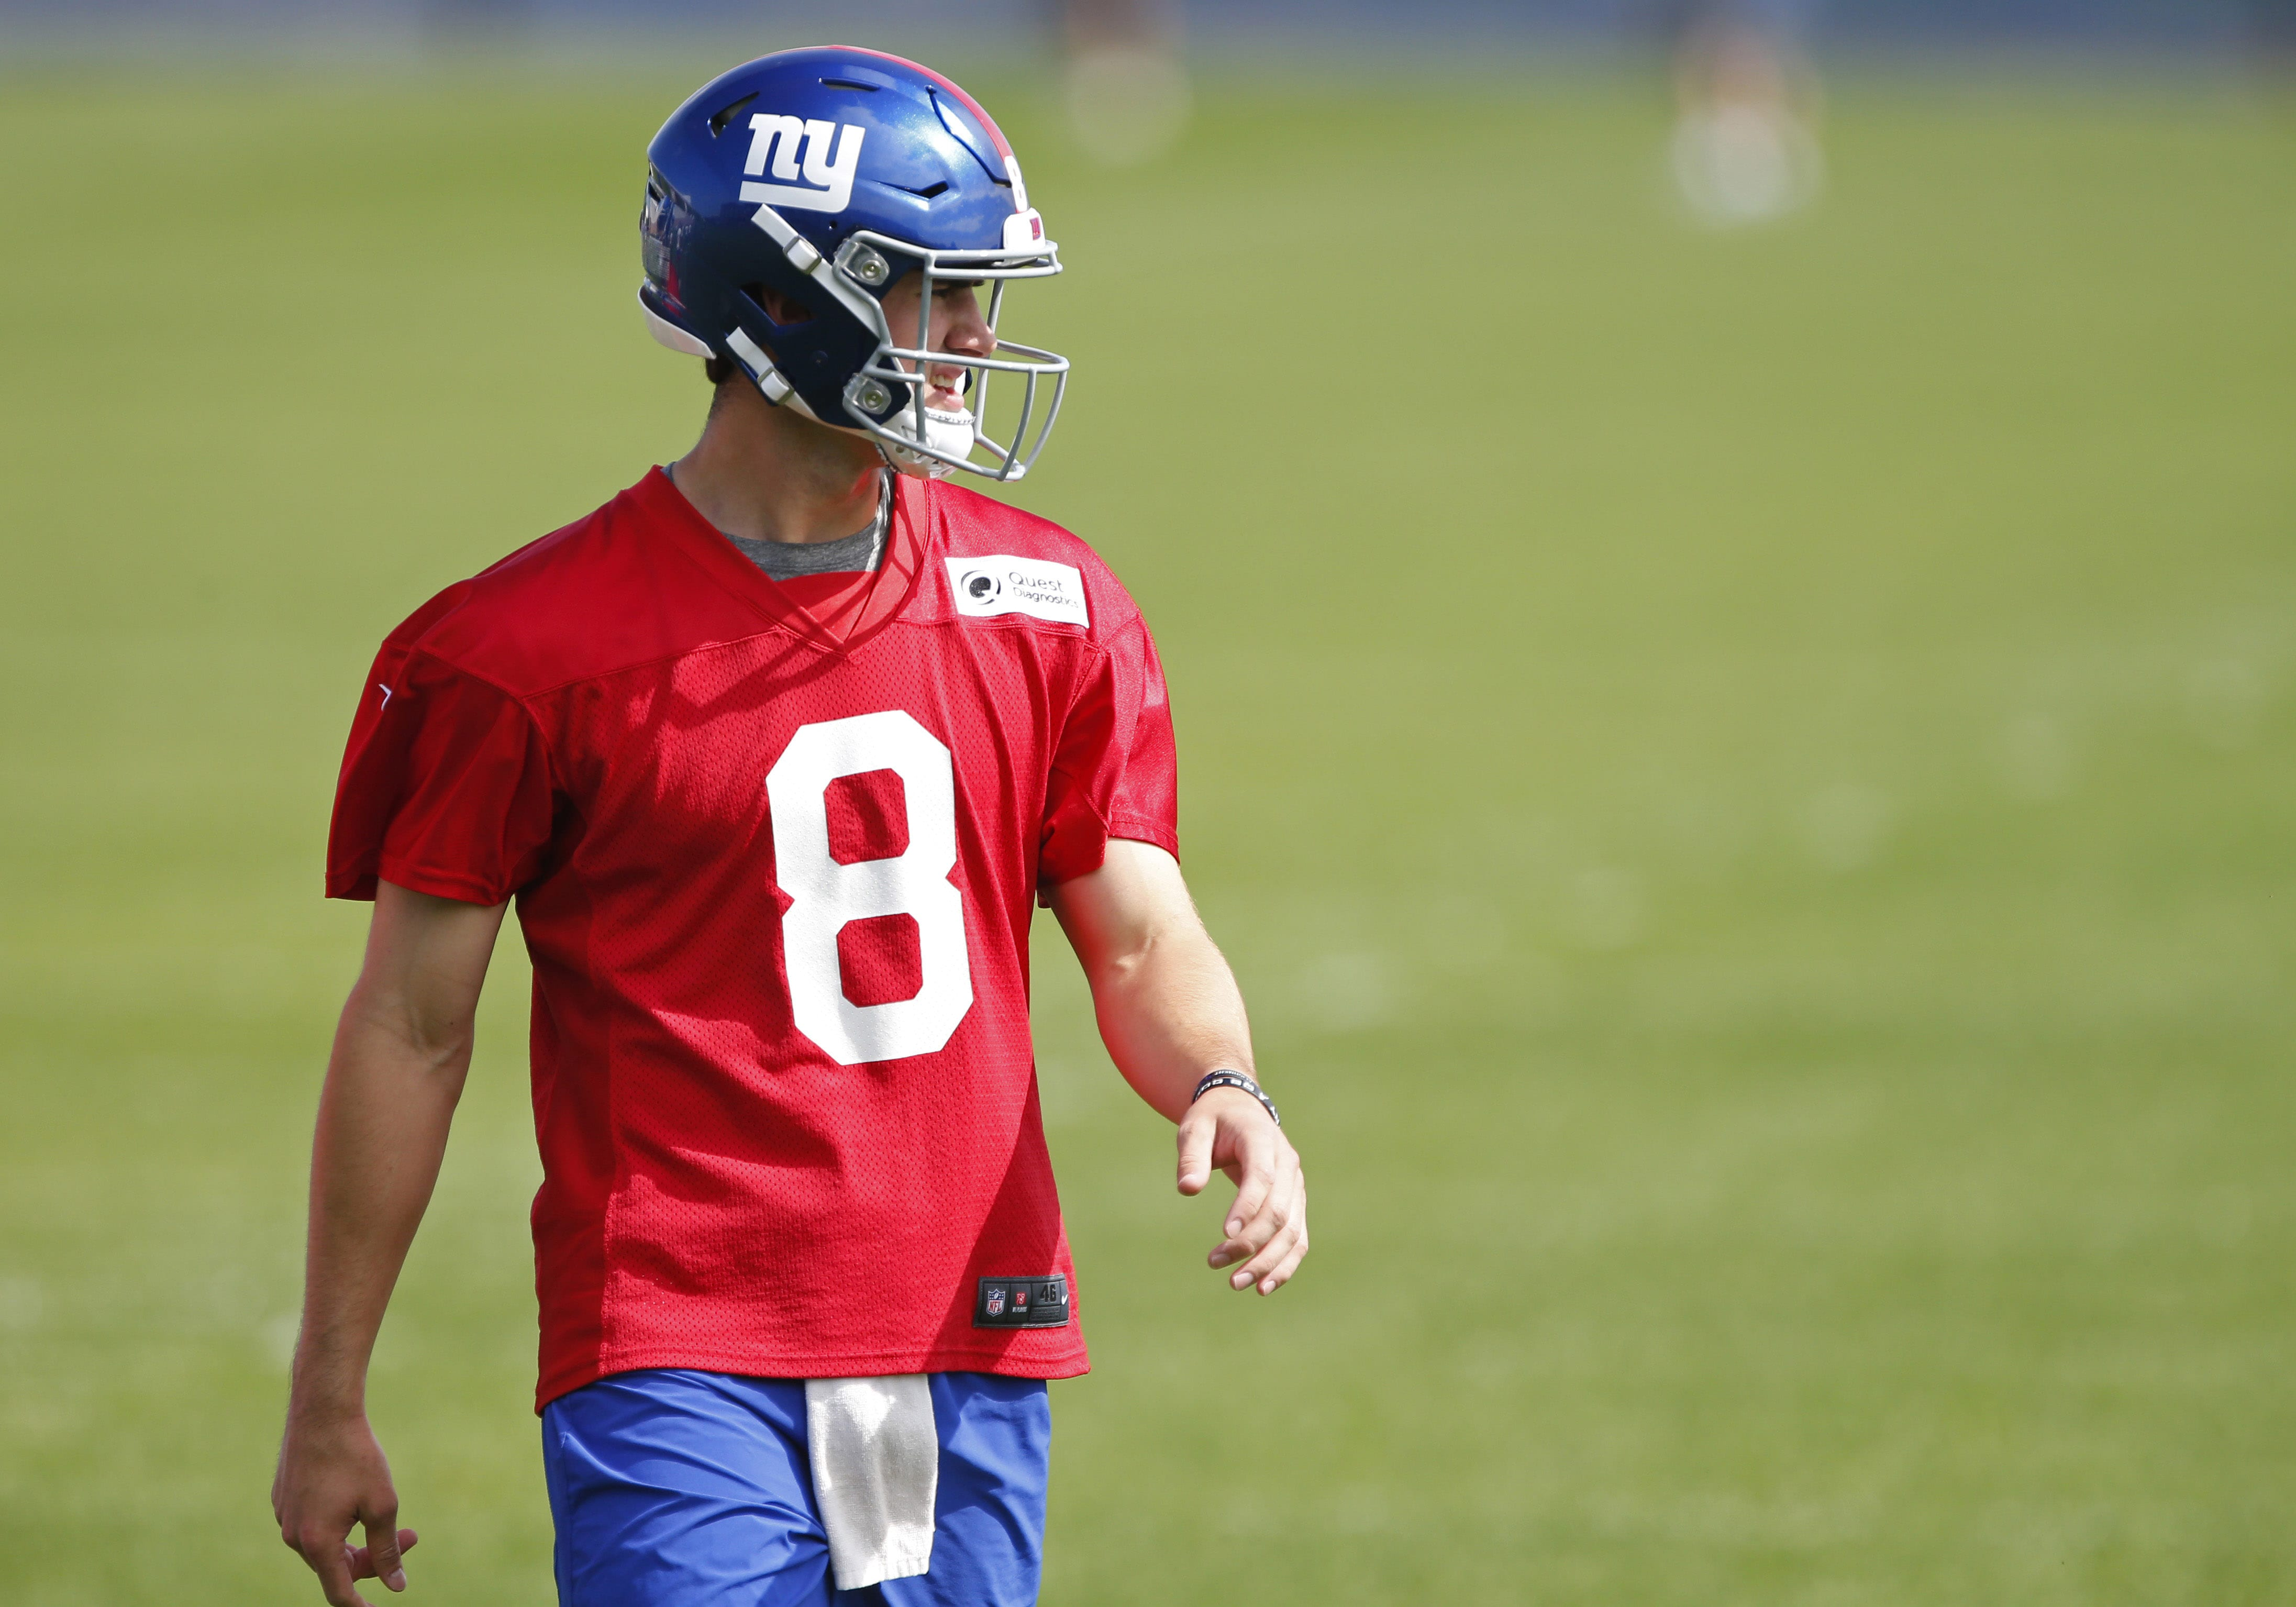 New York Giants rookie quarterback, Daniel Jones during voluntary OTAs.